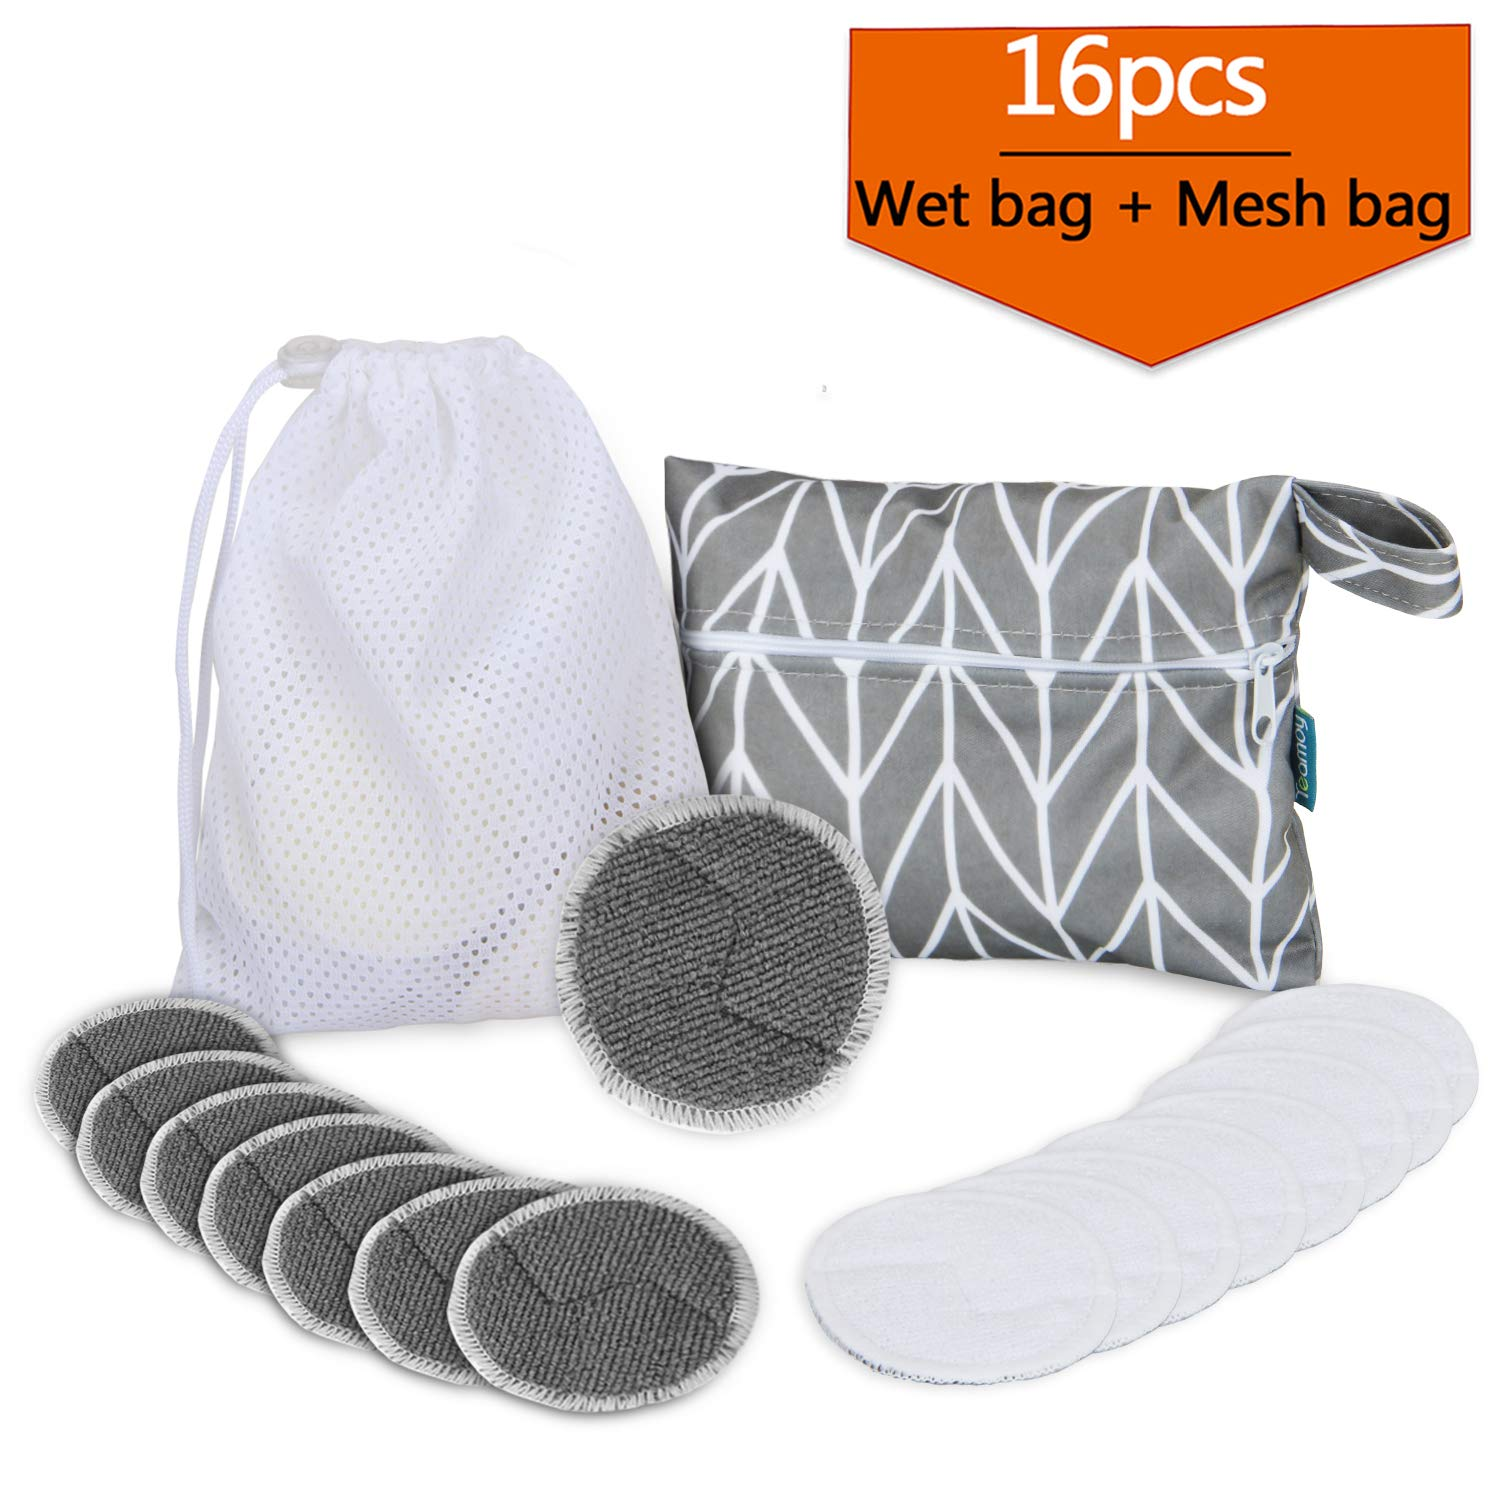 16Pcs Reusable Makeup Remover Pads with 2 EXTRA Bags(Laundry and Storage Bag), 2-Sided Microfiber Face Rounds for Face, Super Soft and Absorption Wash Cloth Pads by Teamoy by Teamoy